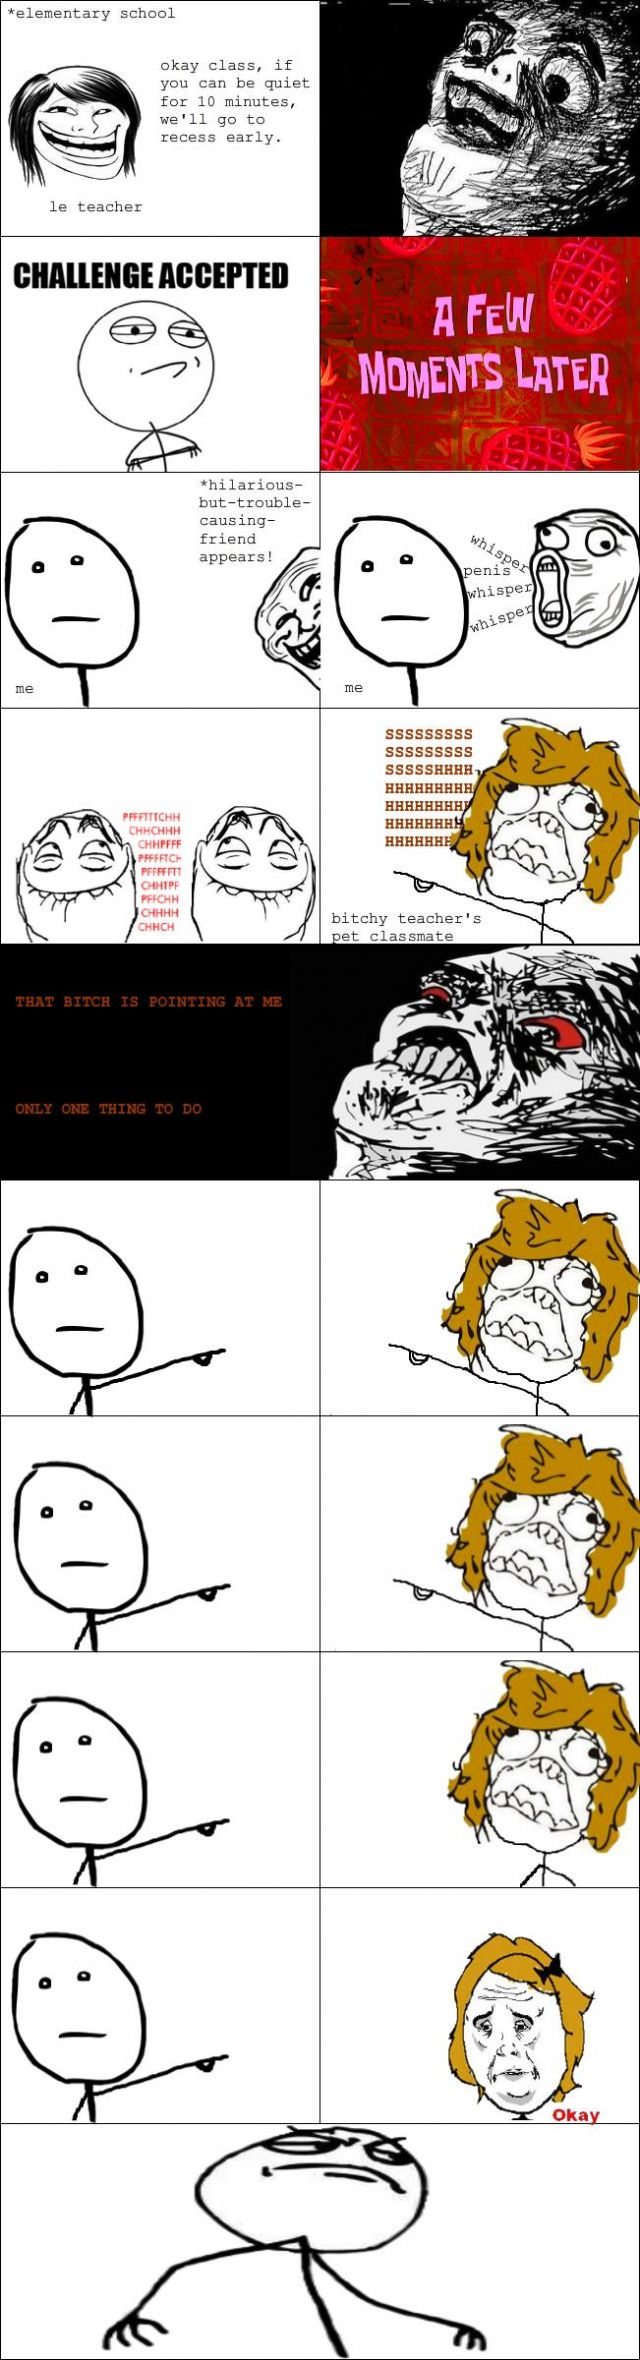 funny rage comics | Variety Of Funny Pics | Pinterest